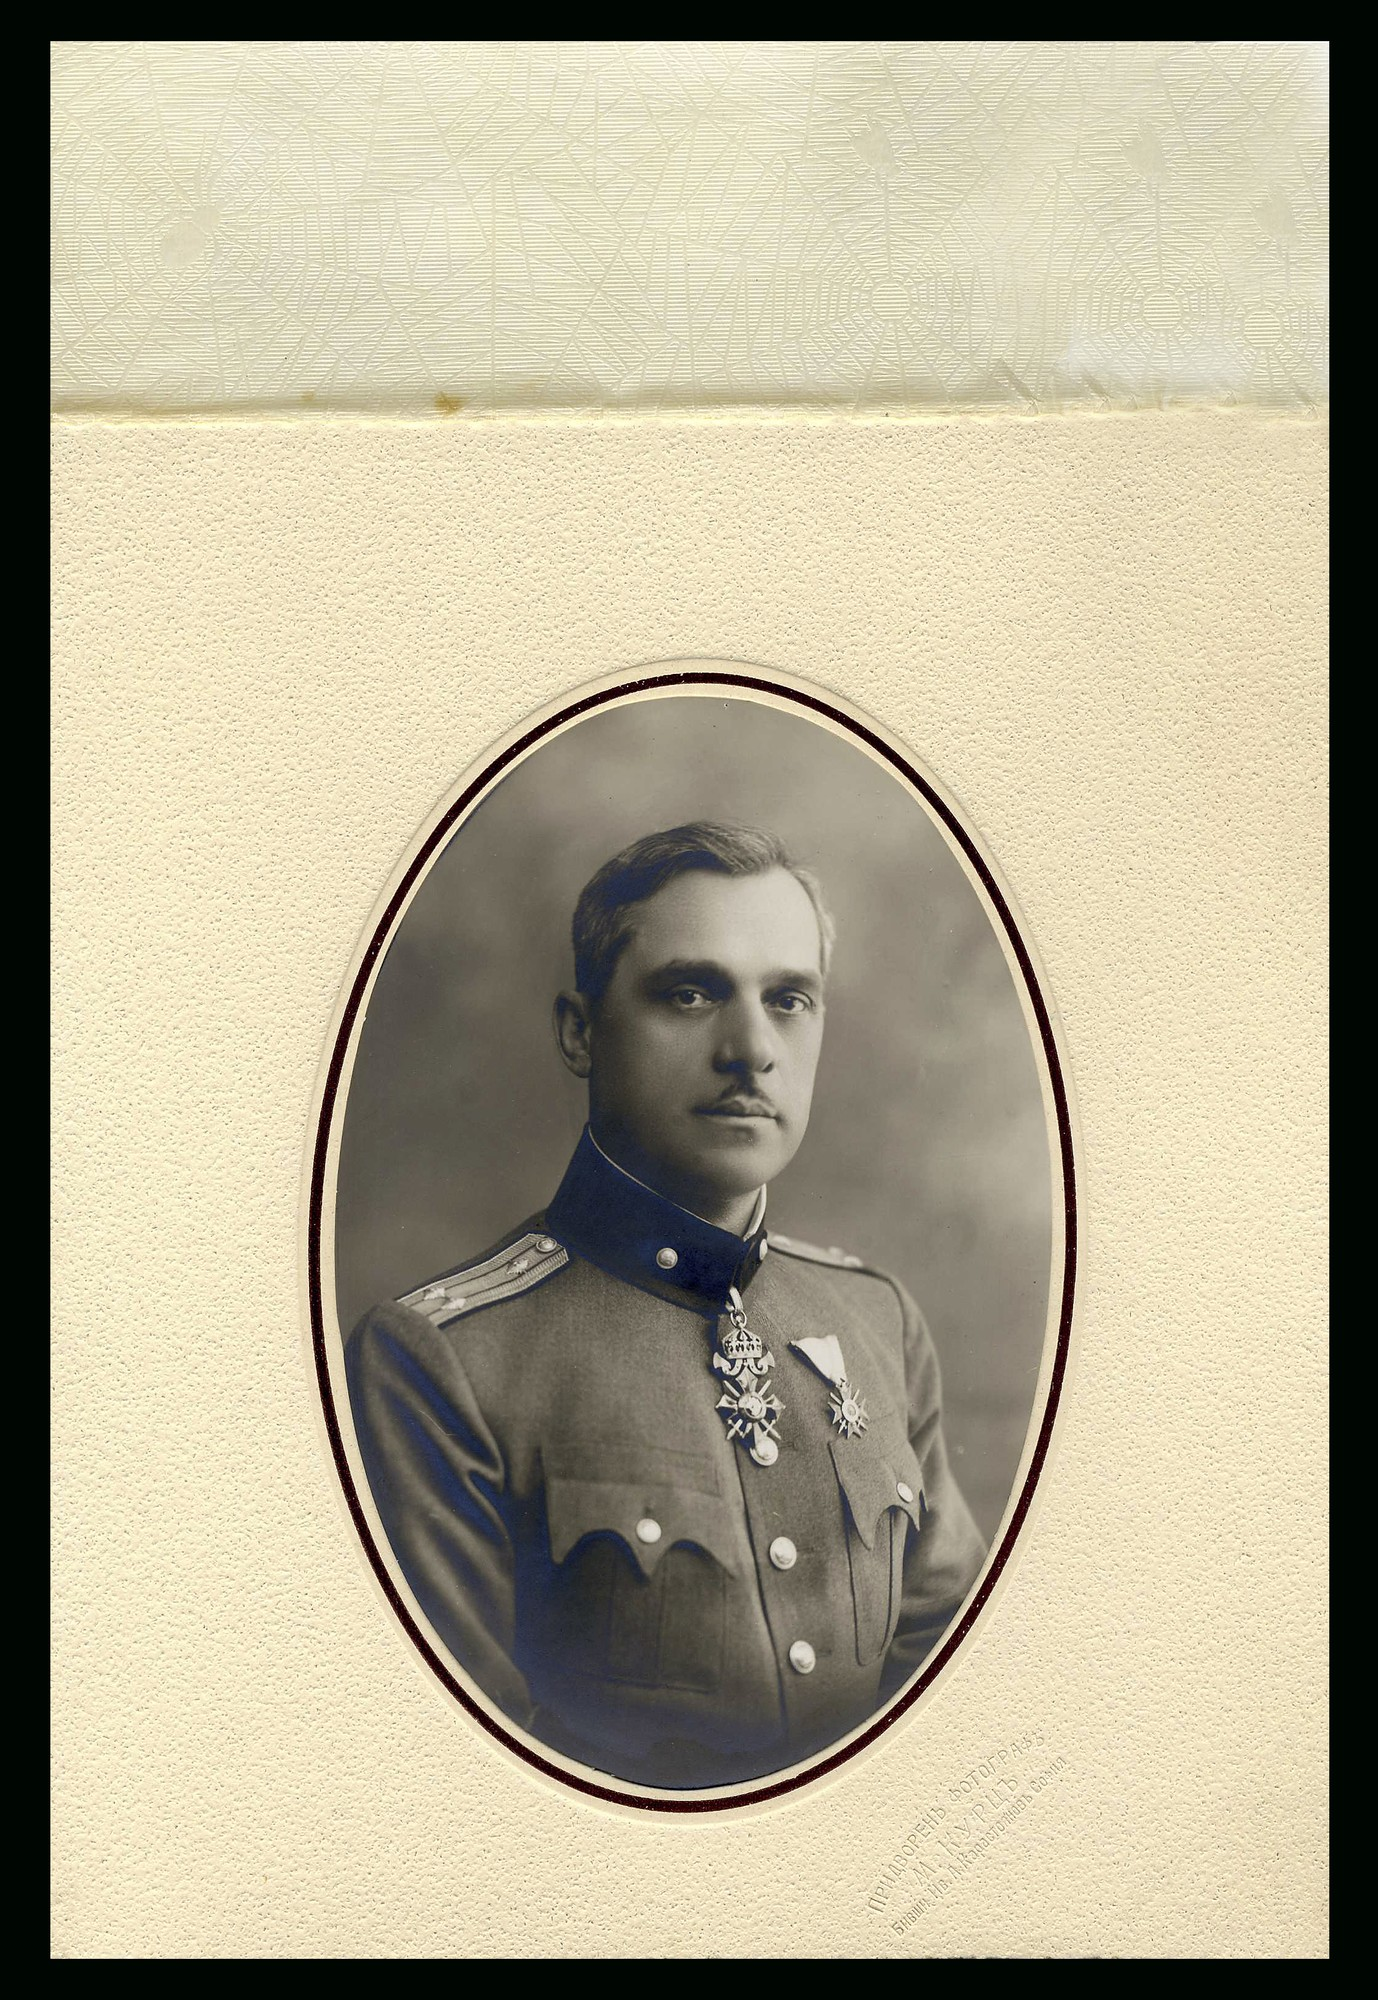 Studio portrait of General Vasilev, © Personal Archive of Svetla Bogdanova